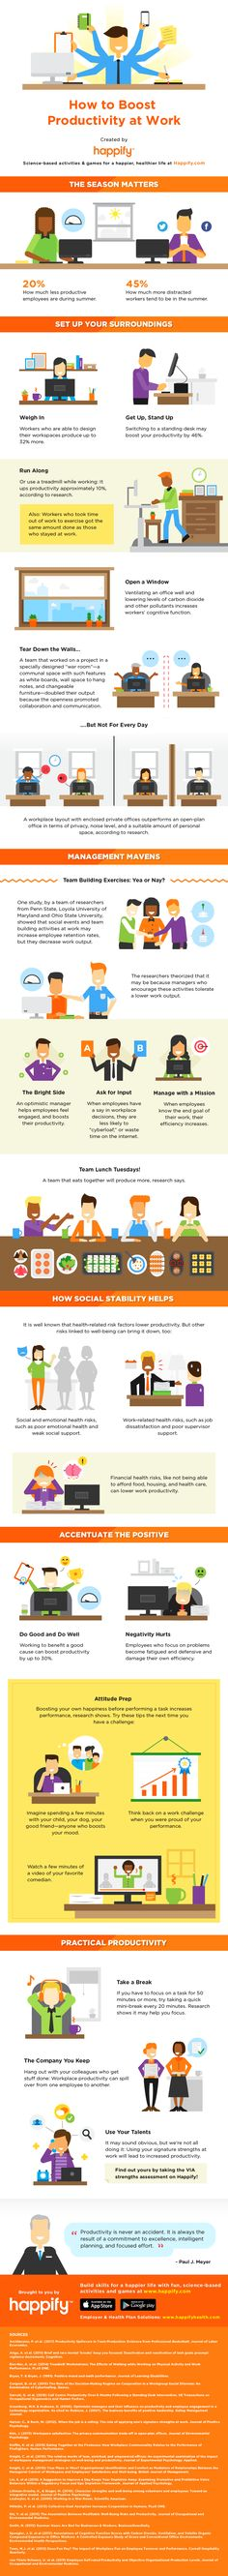 INFOGRAPHIC: 16 Secrets to Greater Productivity